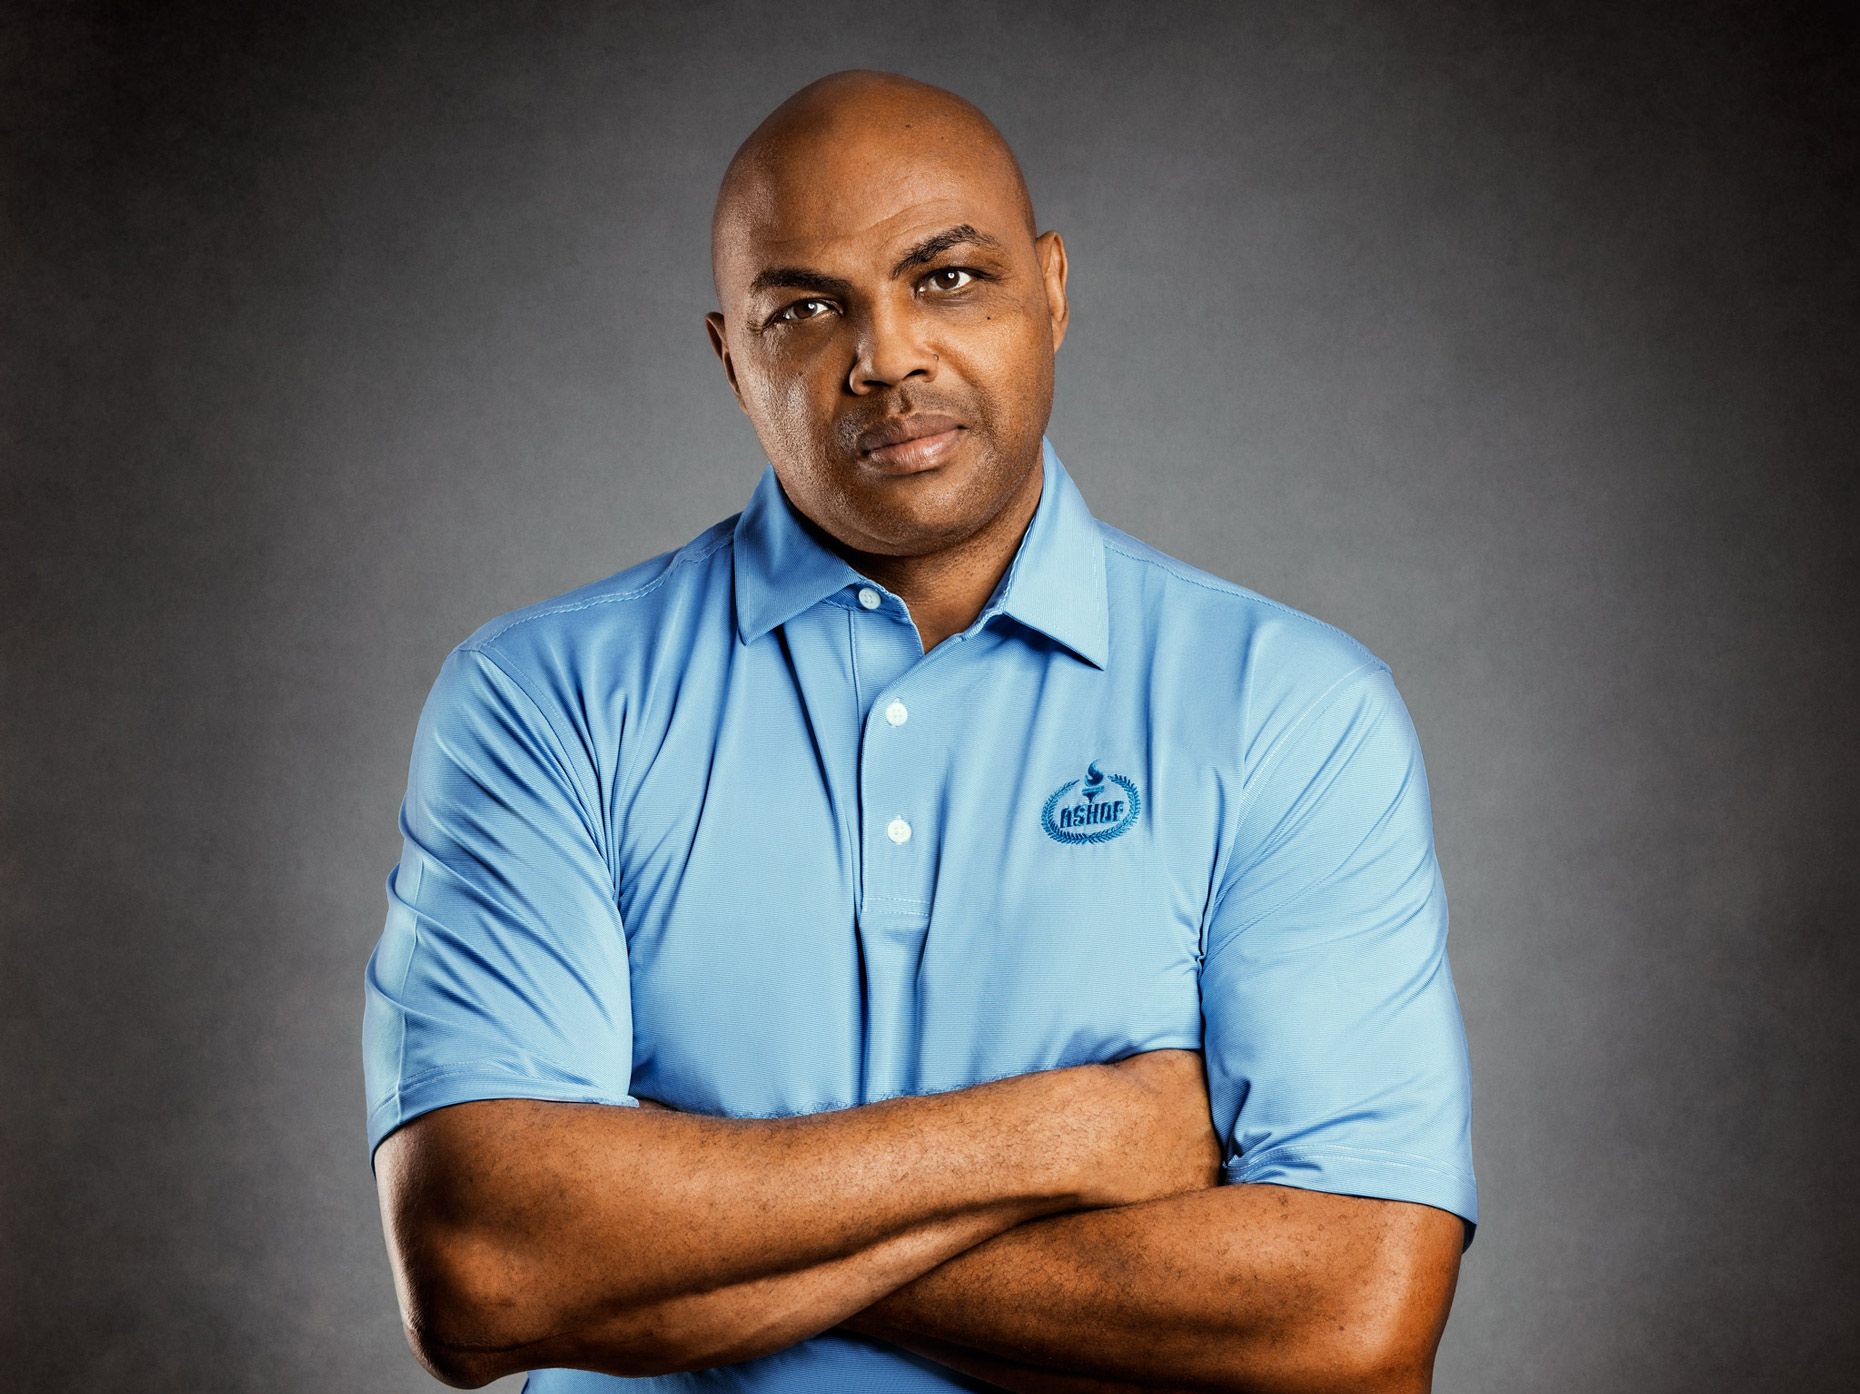 Charles_Barkley2-by-Michael-J-Moore_web